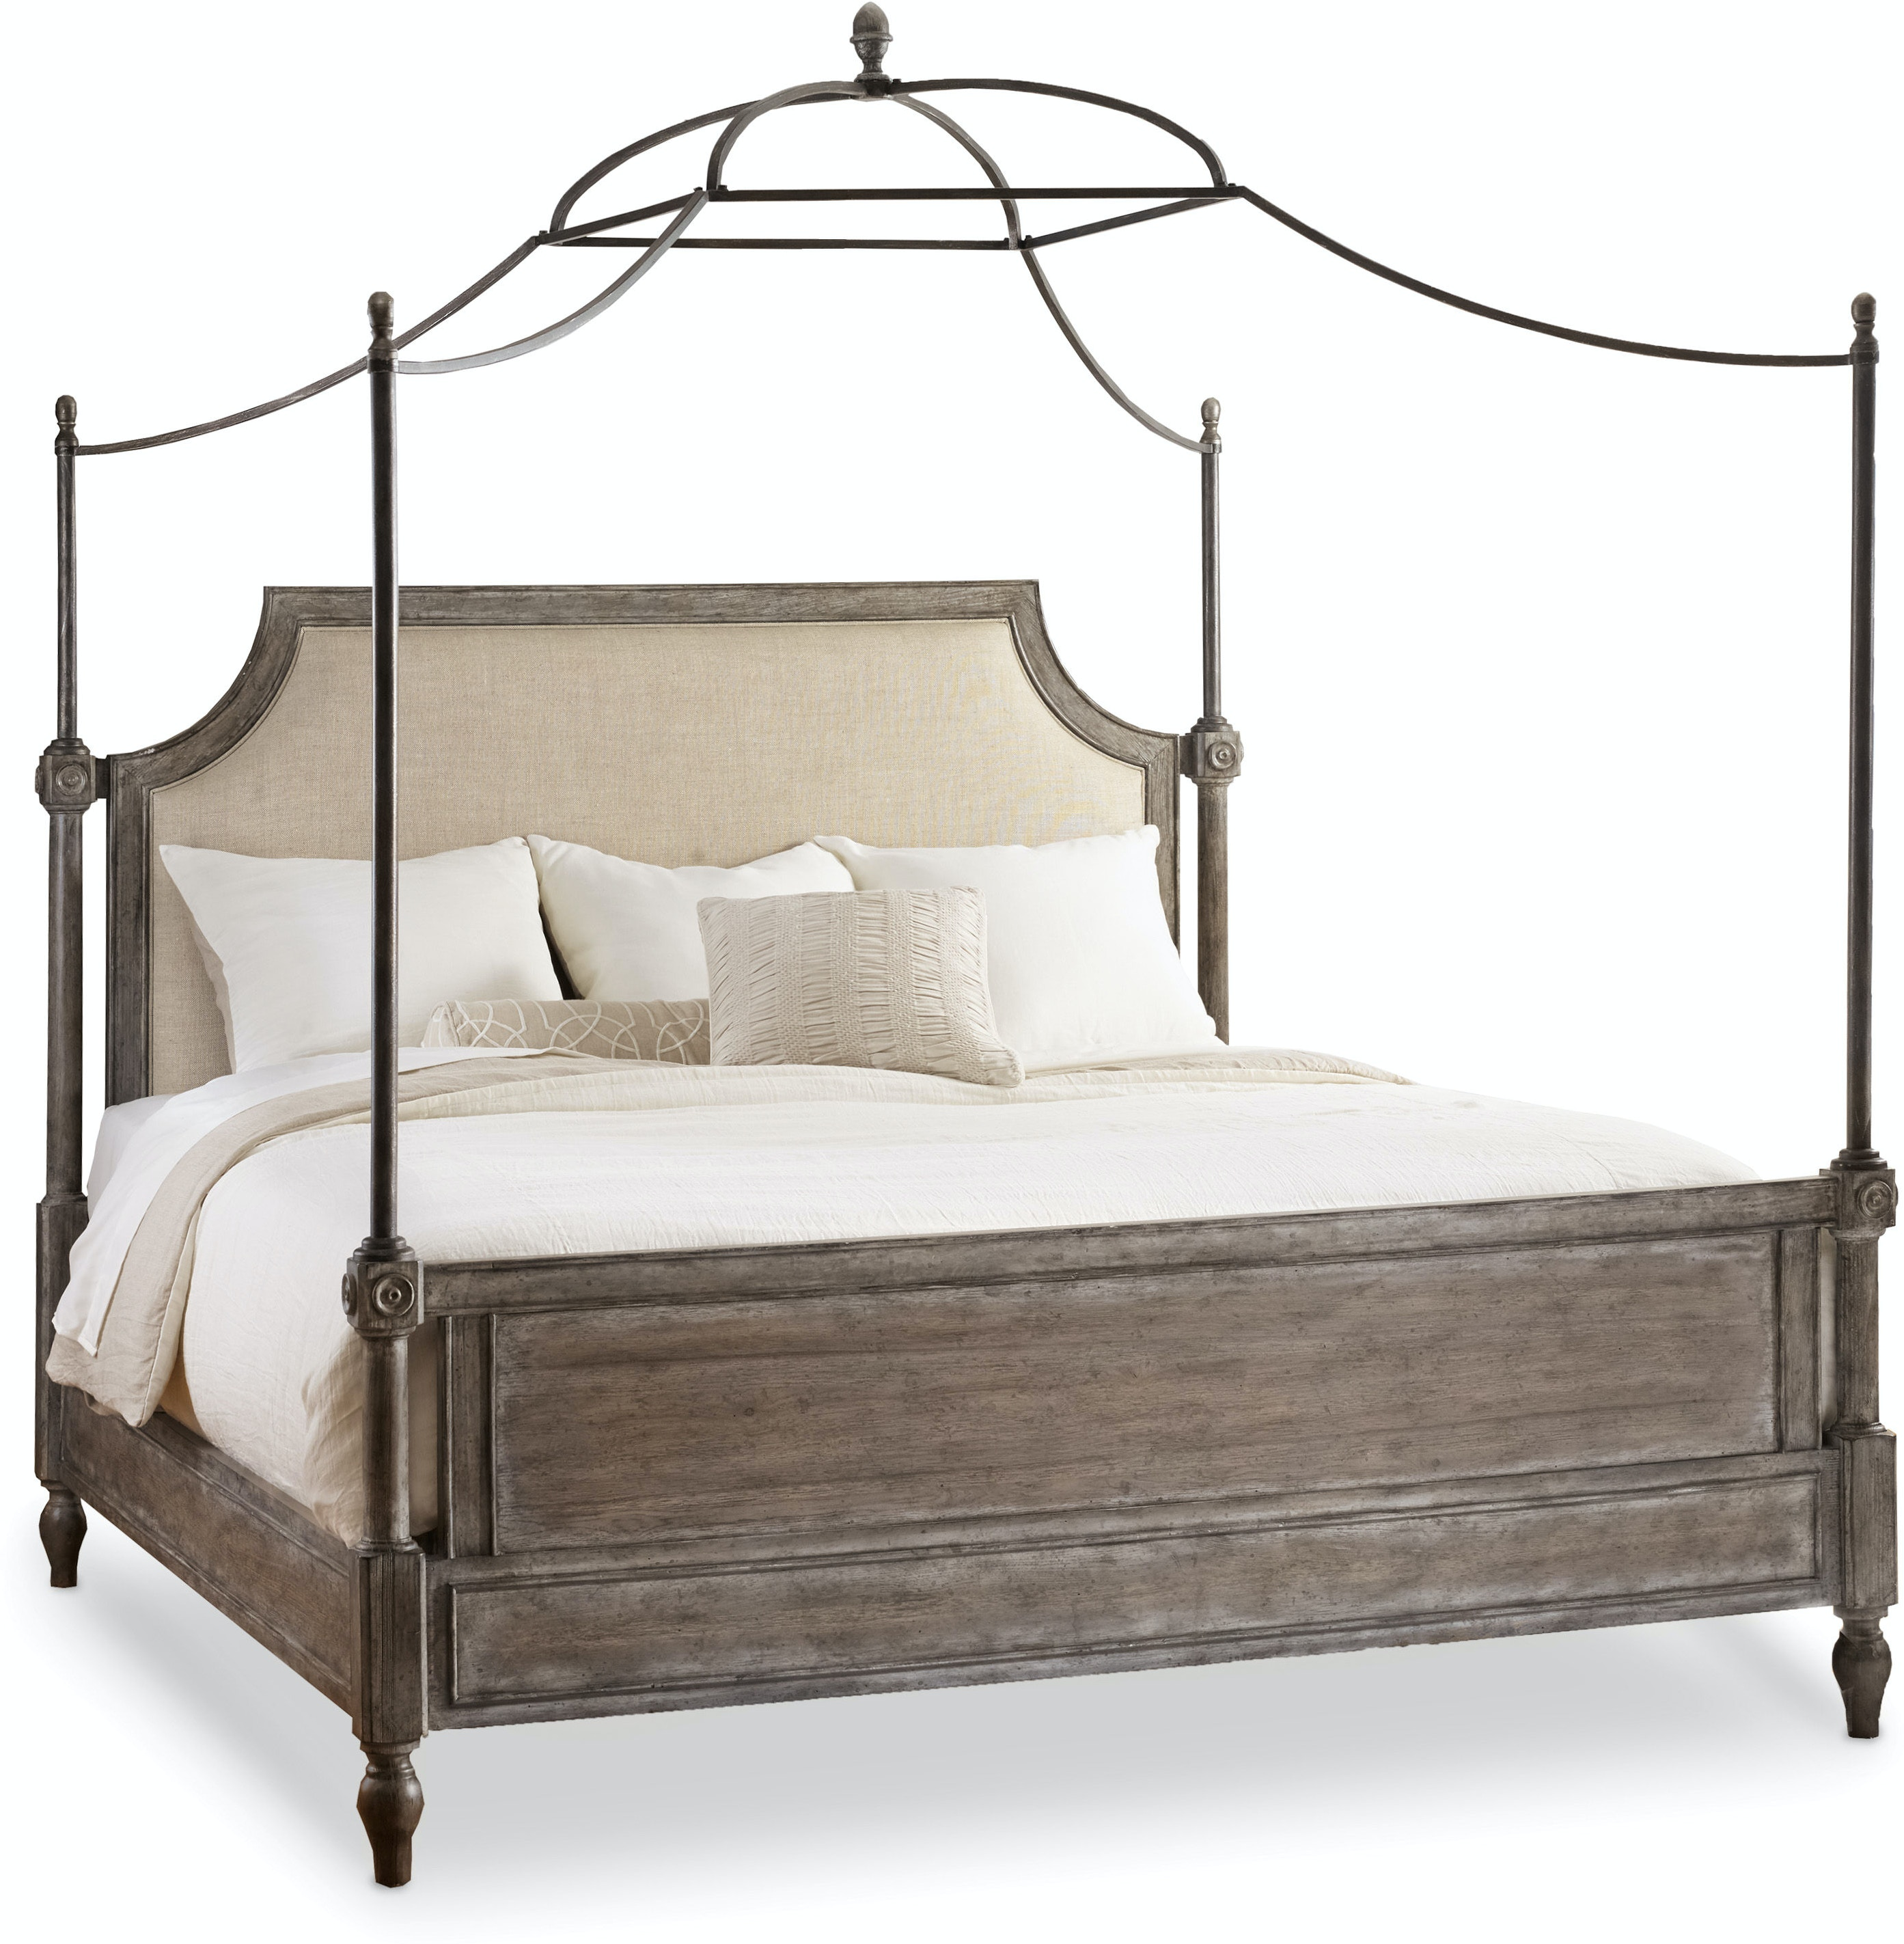 set free garden queen quatrefoil curated canopy today nomad the overstock product shipping home bedroom bed